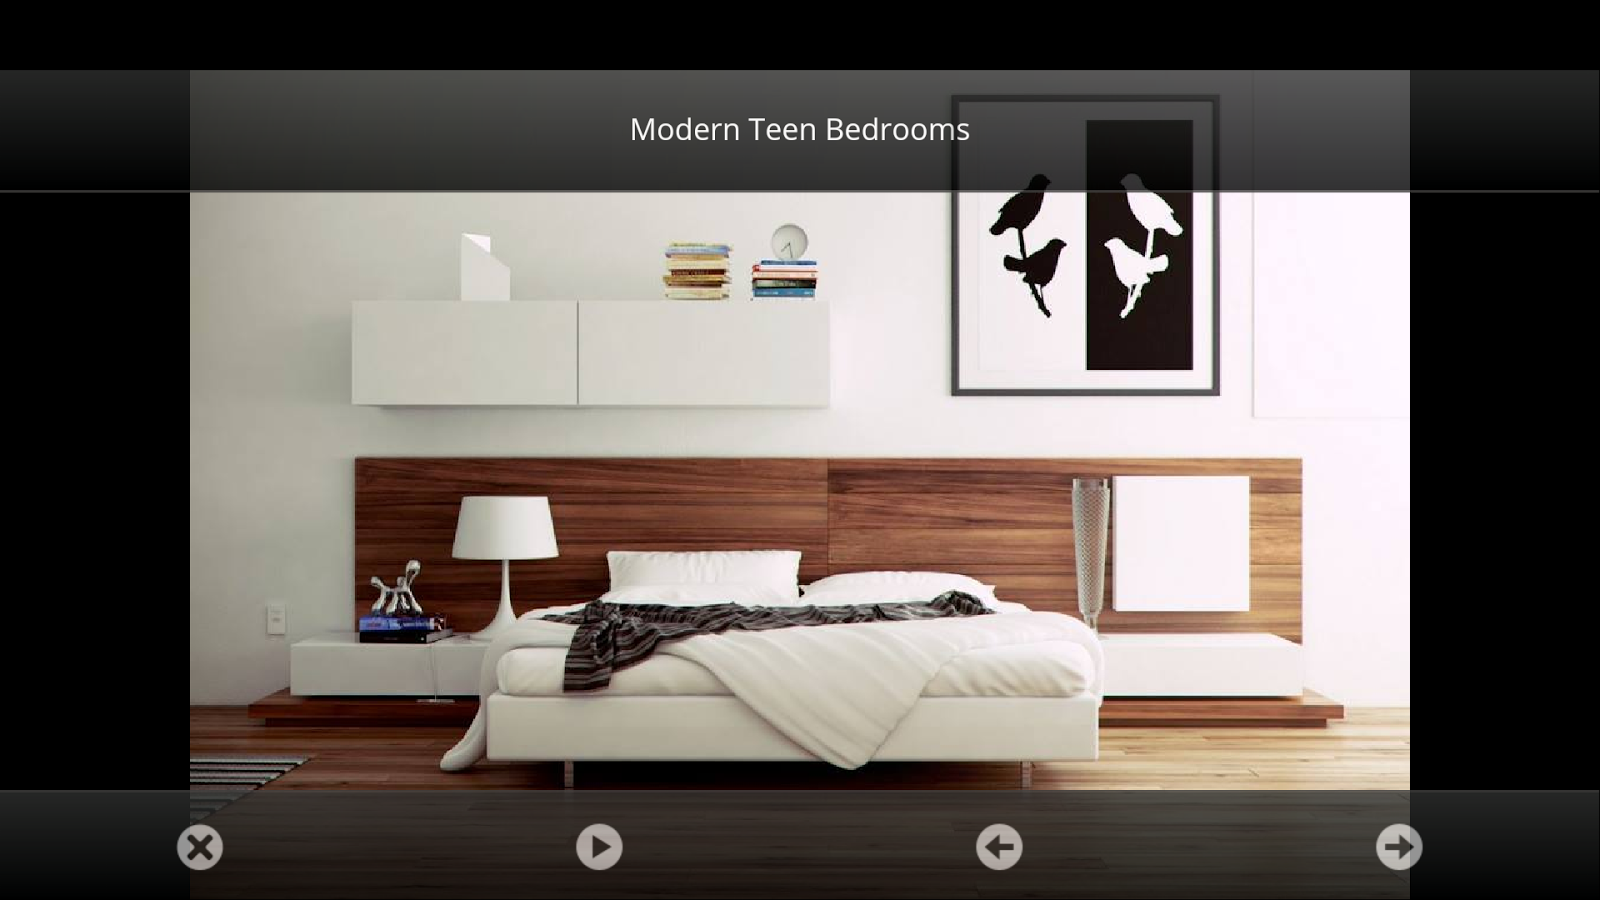 Bedroom decorating ideas android apps on google play - Volwassen slaapkamer lay outs idee ...